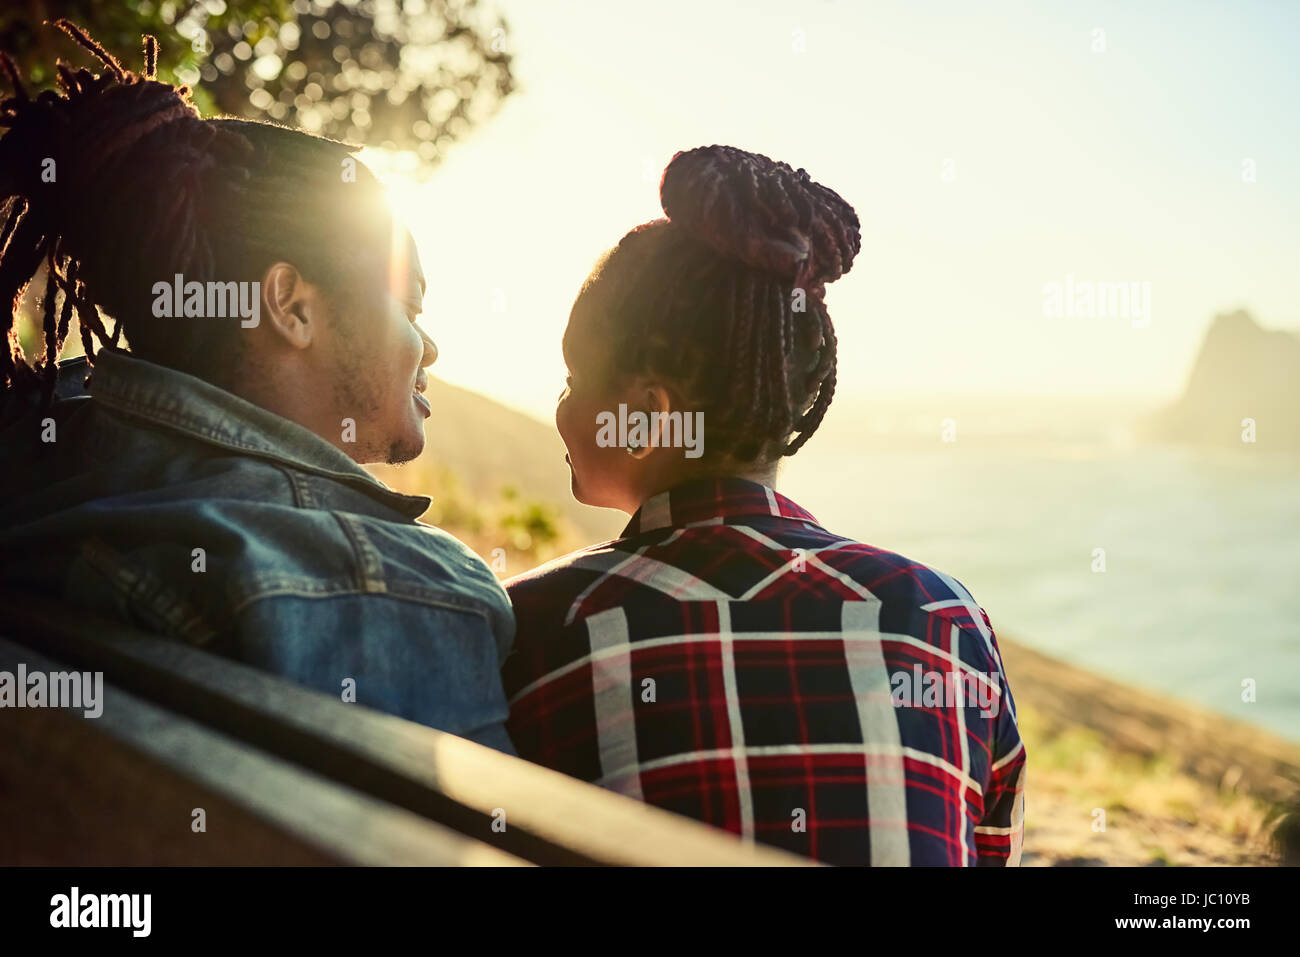 Couple d'origine africaine assise sur un banc public viewpoint Photo Stock